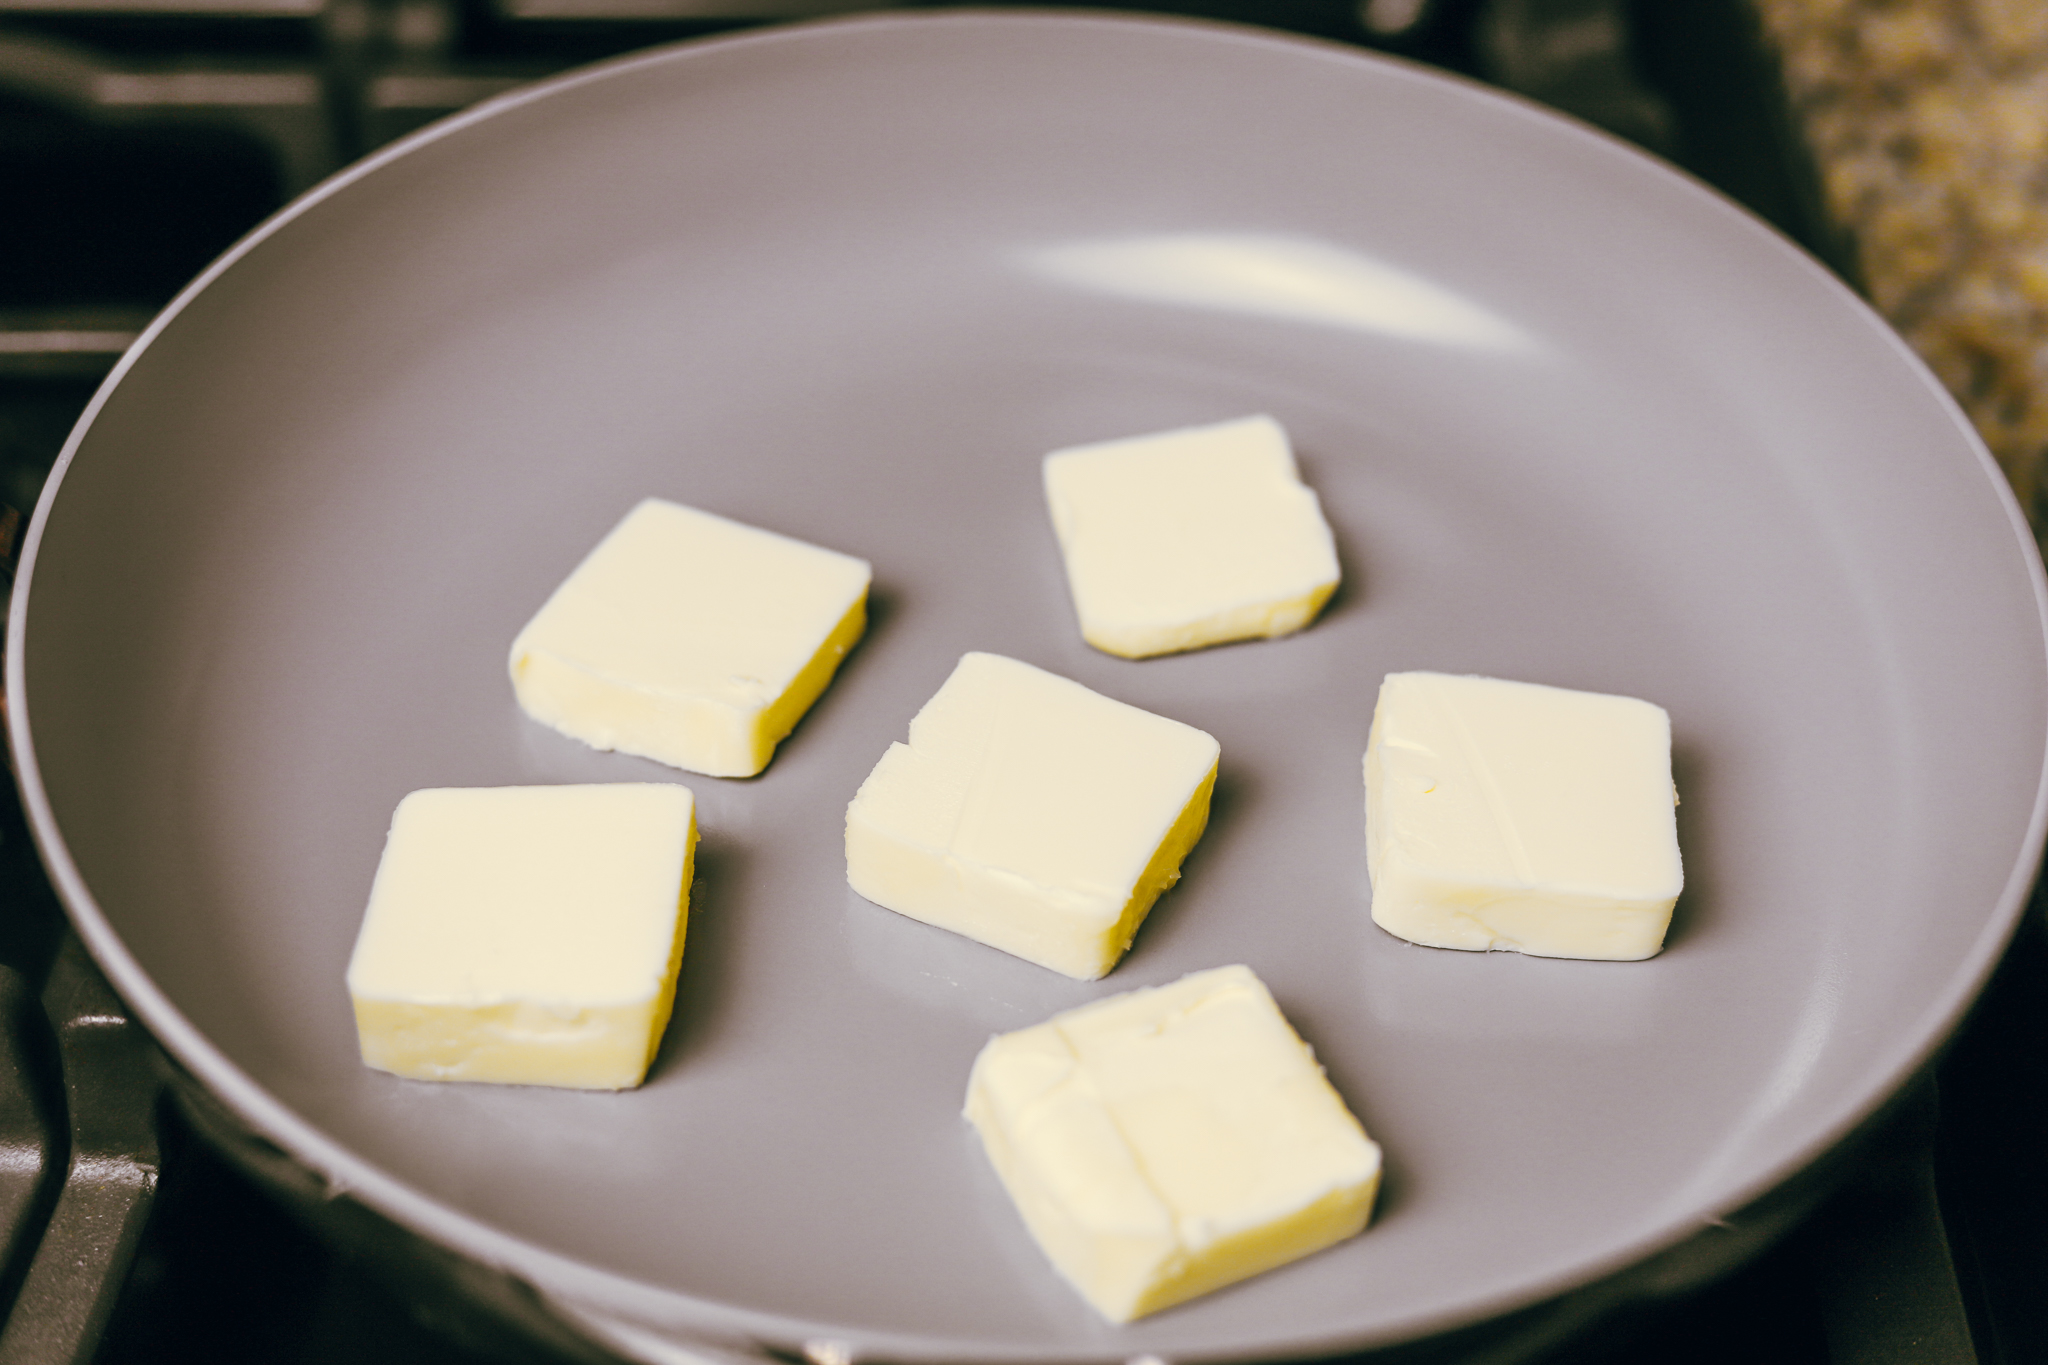 6 tablespoons of butter sliced and placed into a non stick pan